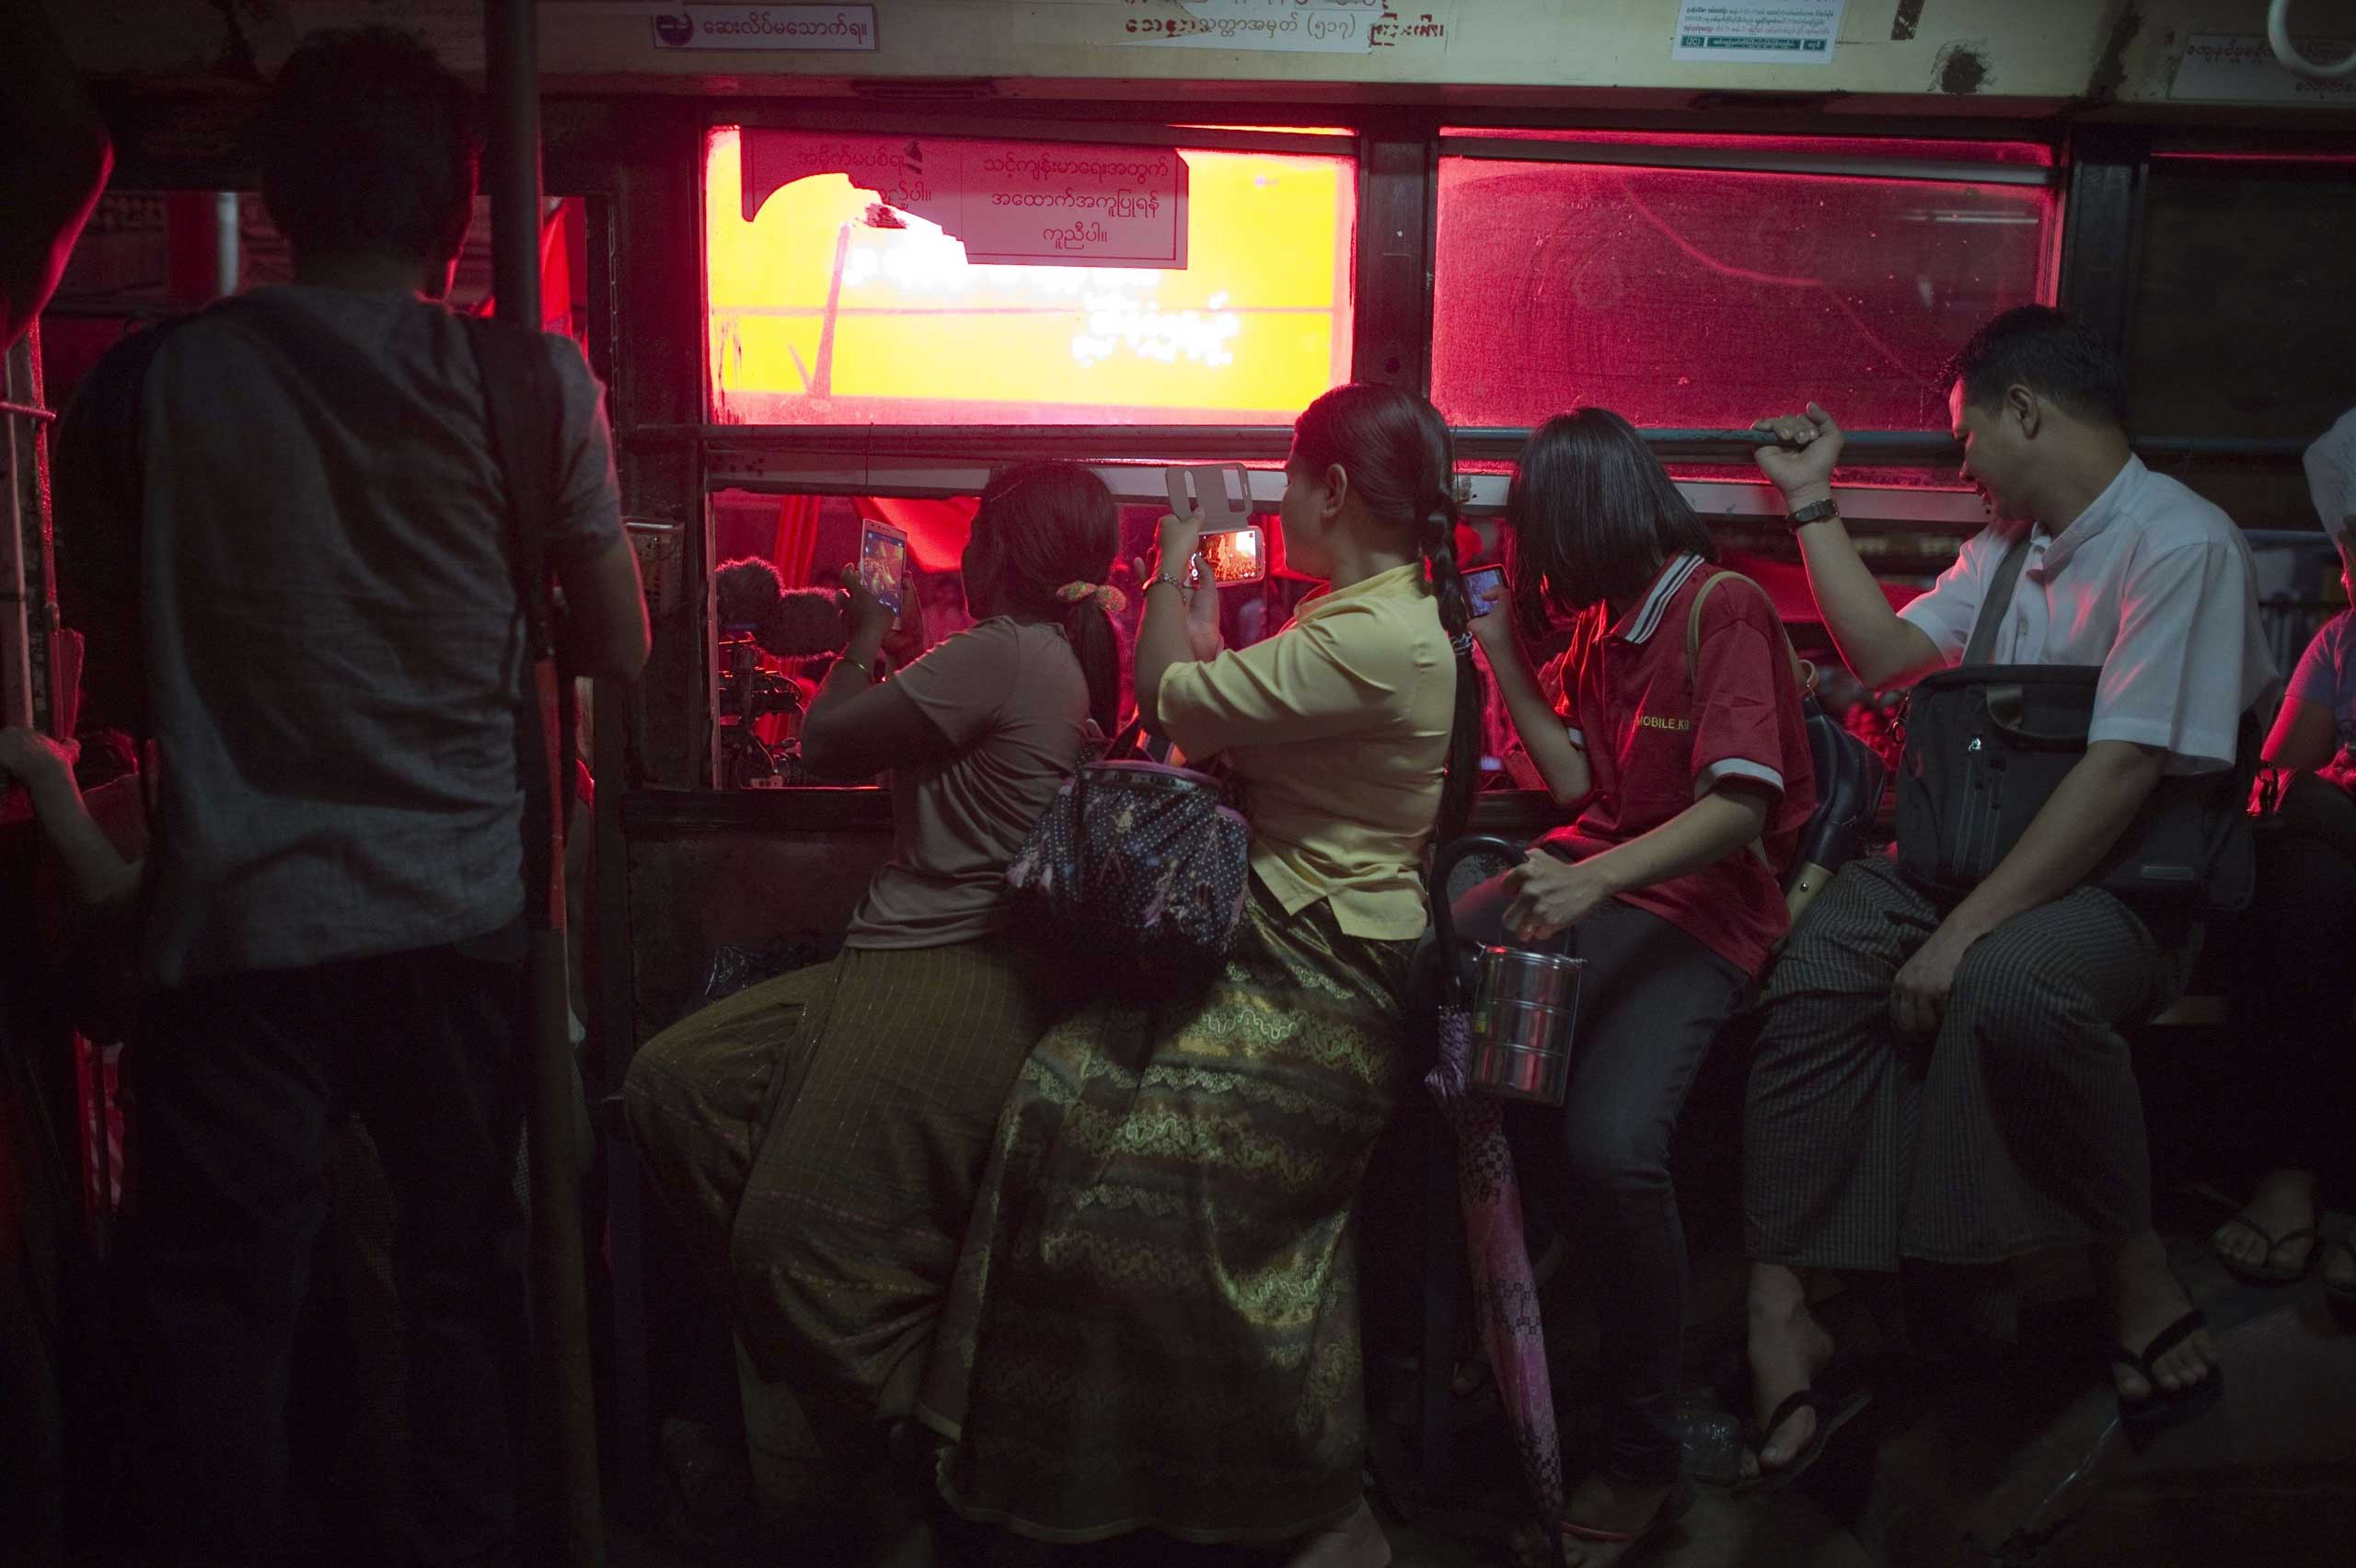 People riding a bus look at supporters of Aung San Suu Kyi as they celebrate outside the National League of Democracy (NLD) headquarters in Rangoon, Burma, on Nov. 9, 2015.